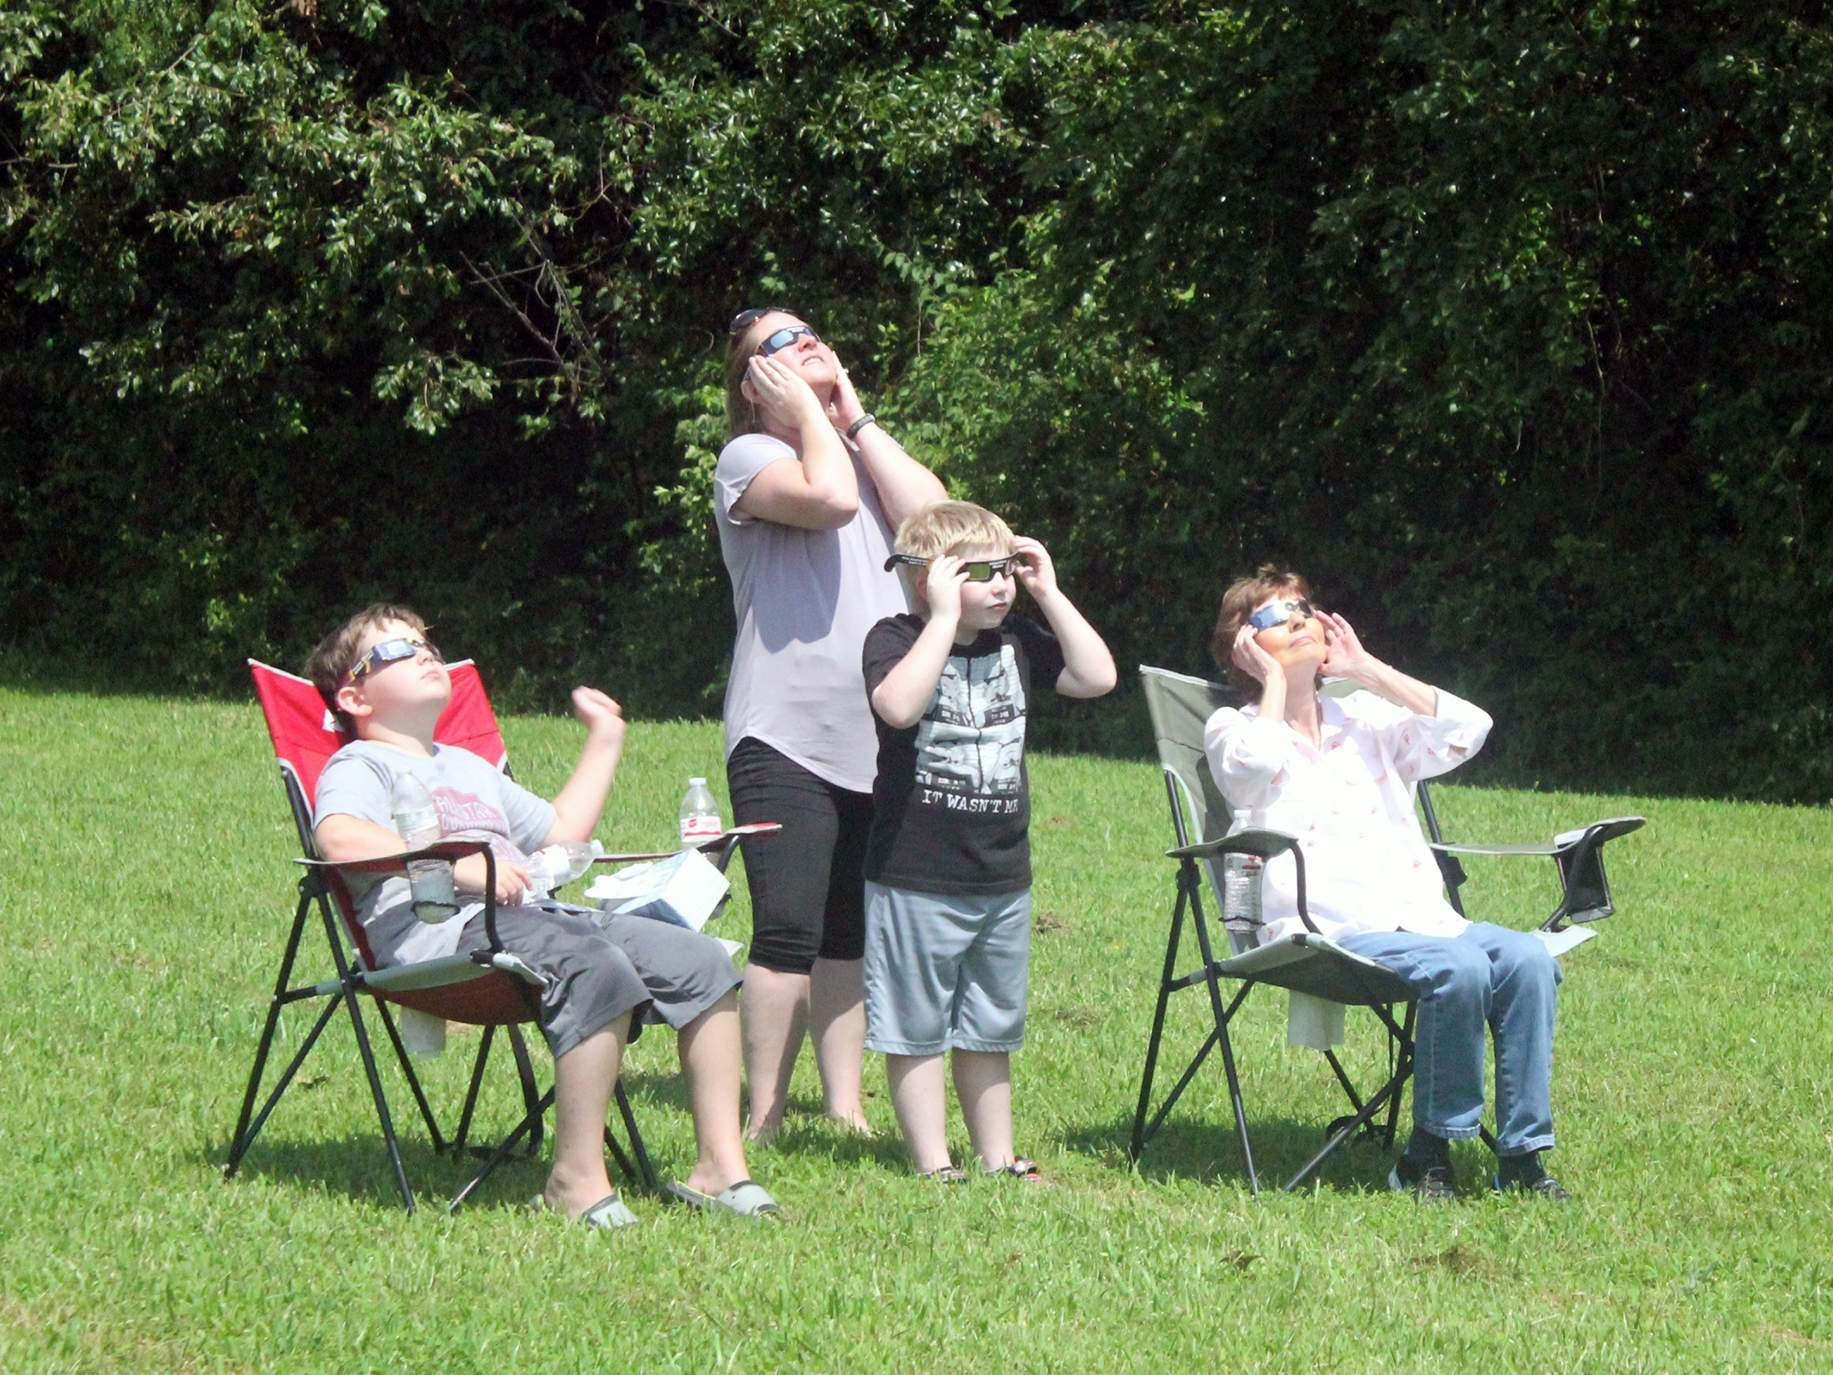 The Hammett family of Independence checks out the end of the partial eclipse before totality at George Owens Nature Park in Independence. [Mike Genet/The Examiner]